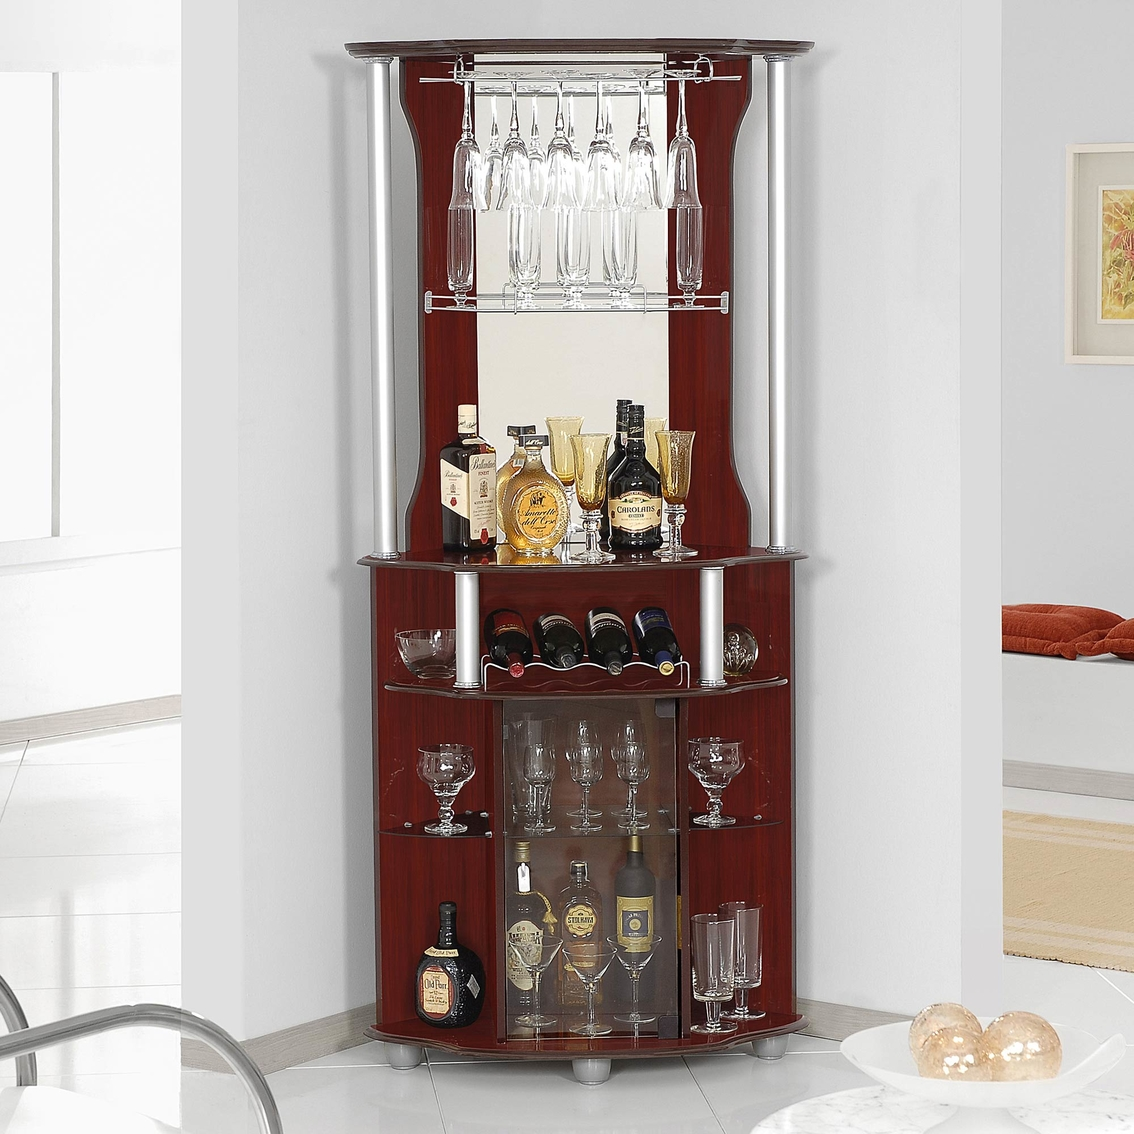 counter unit shelf fixed countertop corner ideas target hutch racks serving rac furniture mixing cabinet ikea wall and wine rack with for mounted bar a liquor buffet storage glasses